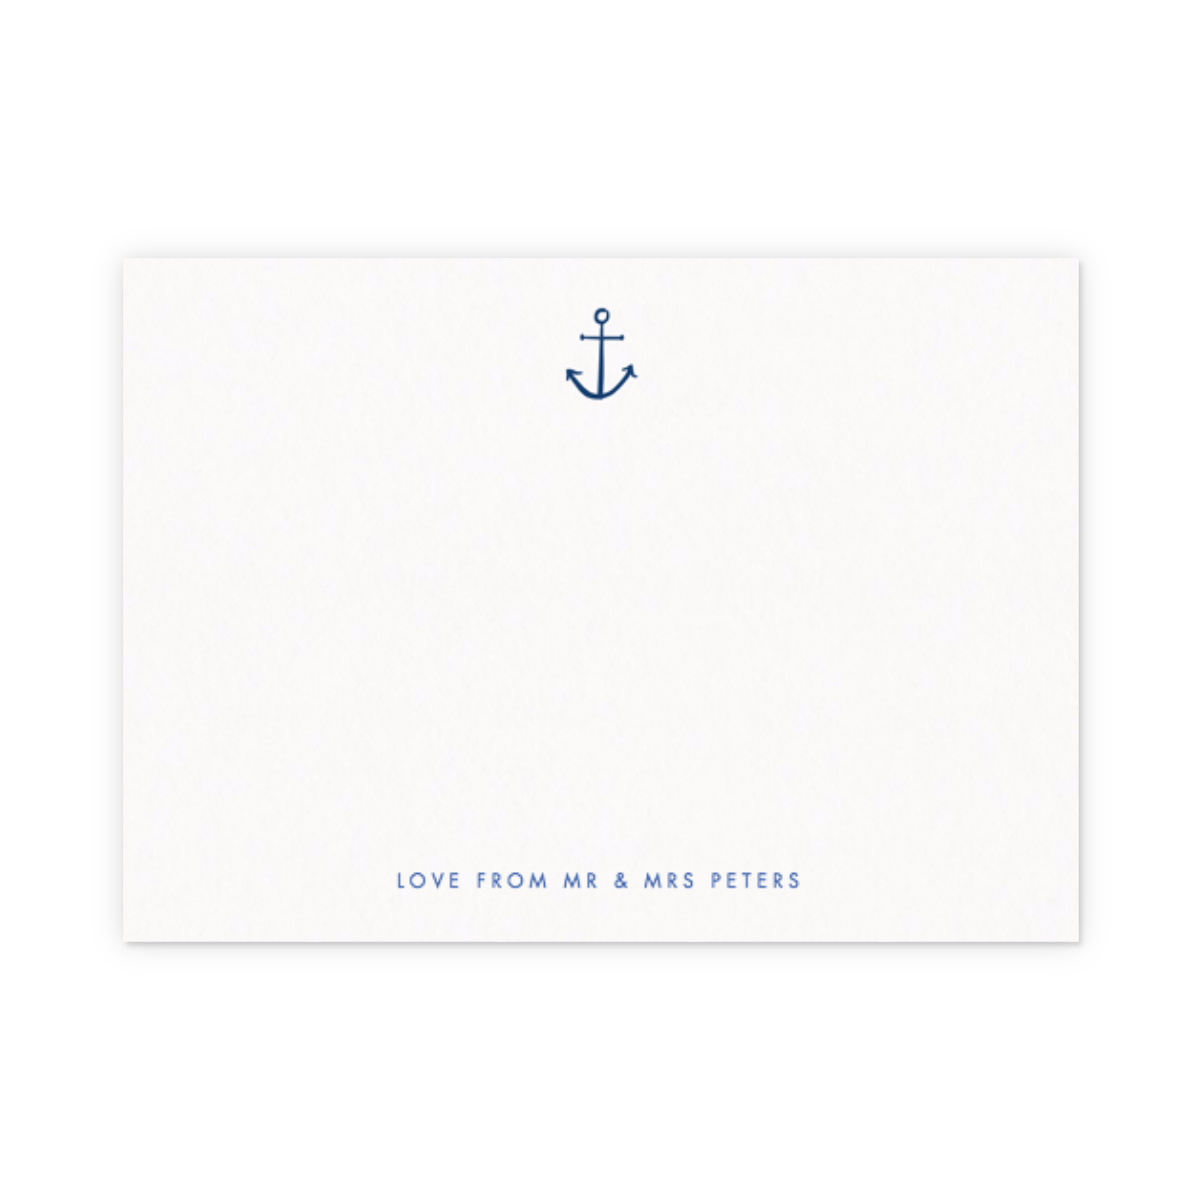 Https%3a%2f%2fwww.papier.com%2fproduct image%2f9548%2f10%2fnautical anchor 2407 front 1501836489.png?ixlib=rb 1.1